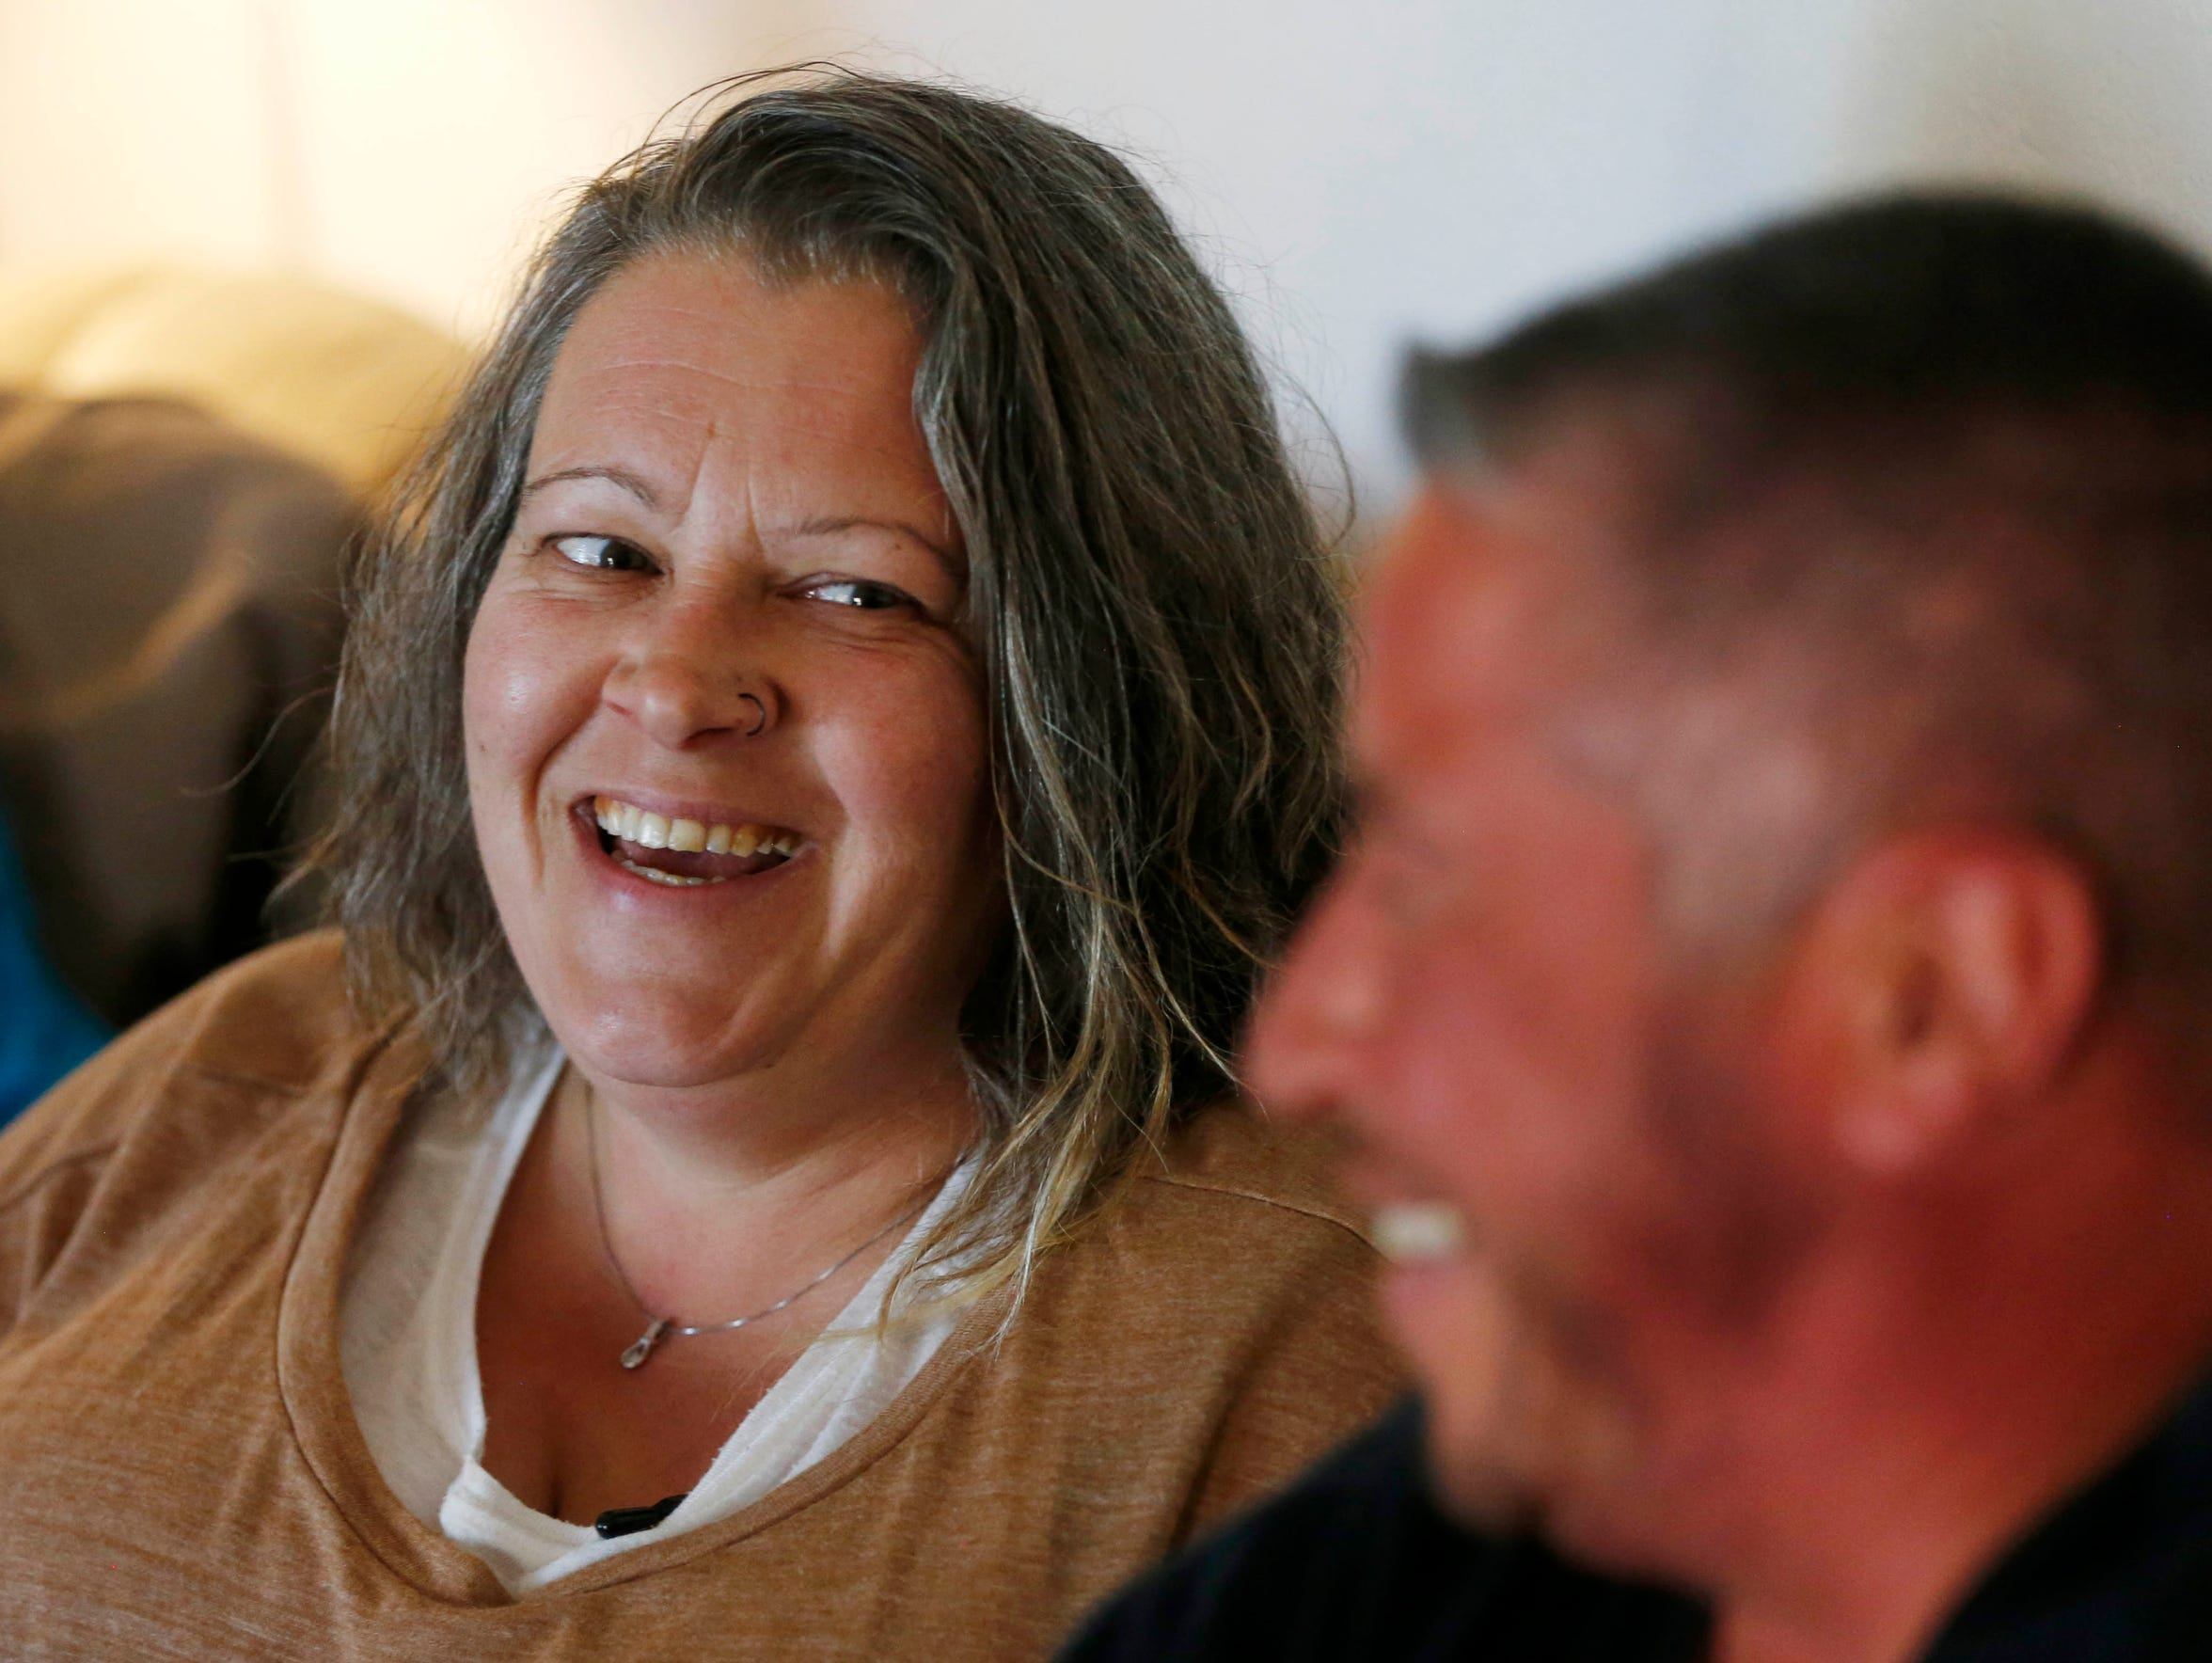 Tammi DeLathower, left, looks on and smiles as husband,